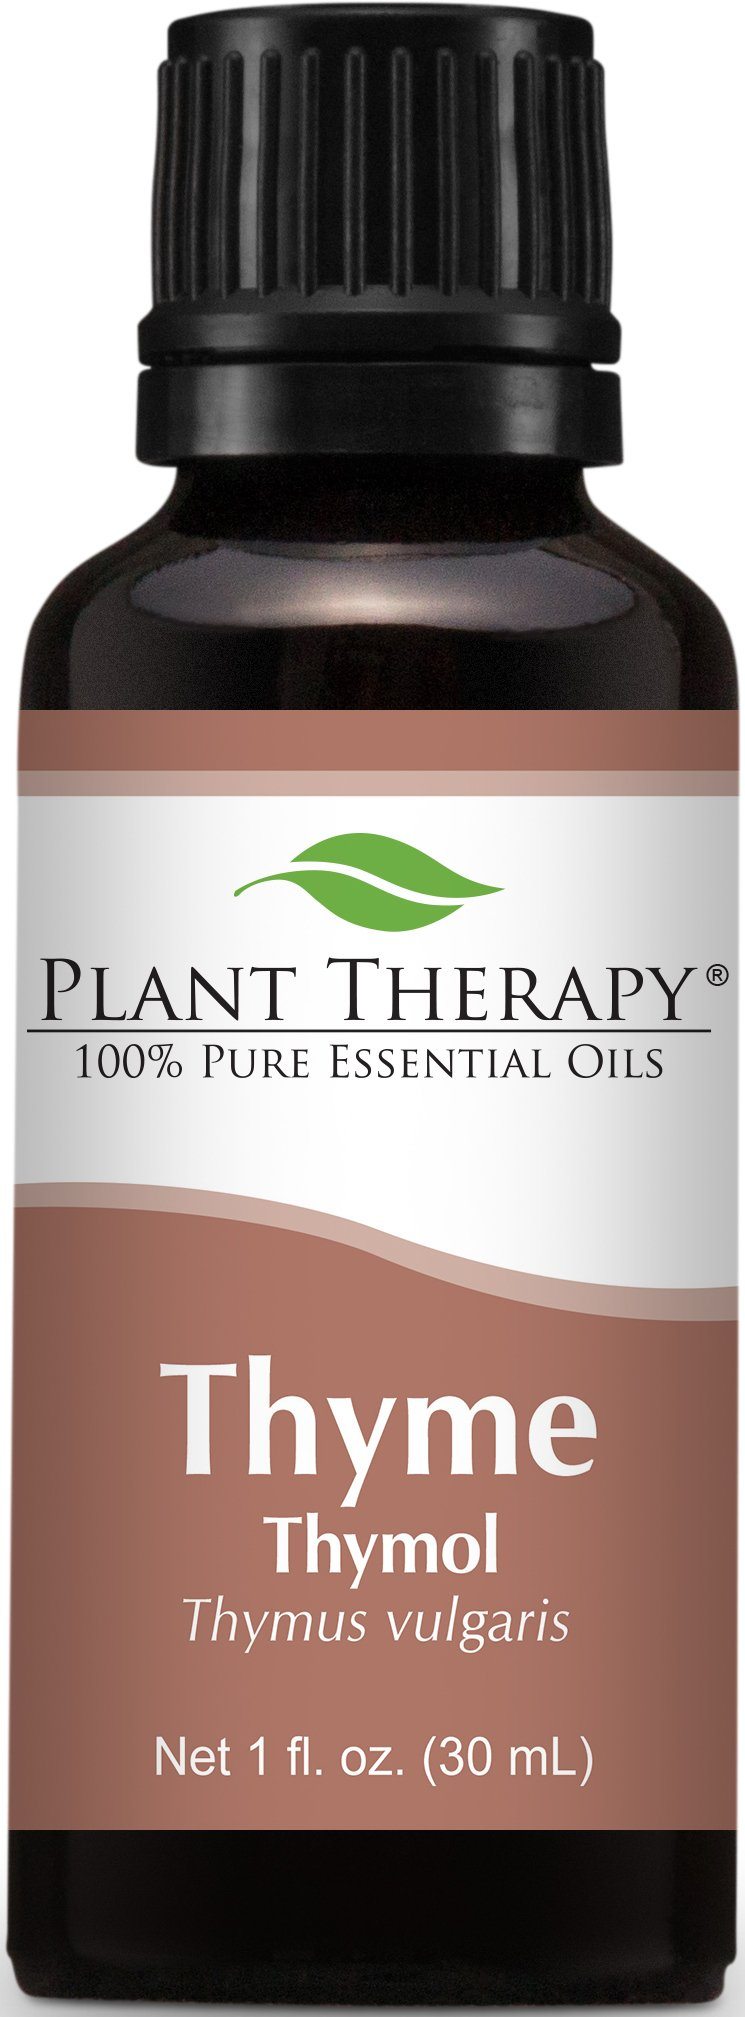 Plant Therapy Thyme Thymol Essential Oil. 100% Pure, Undiluted, Therapeutic Grade. 30 ml (1 oz).